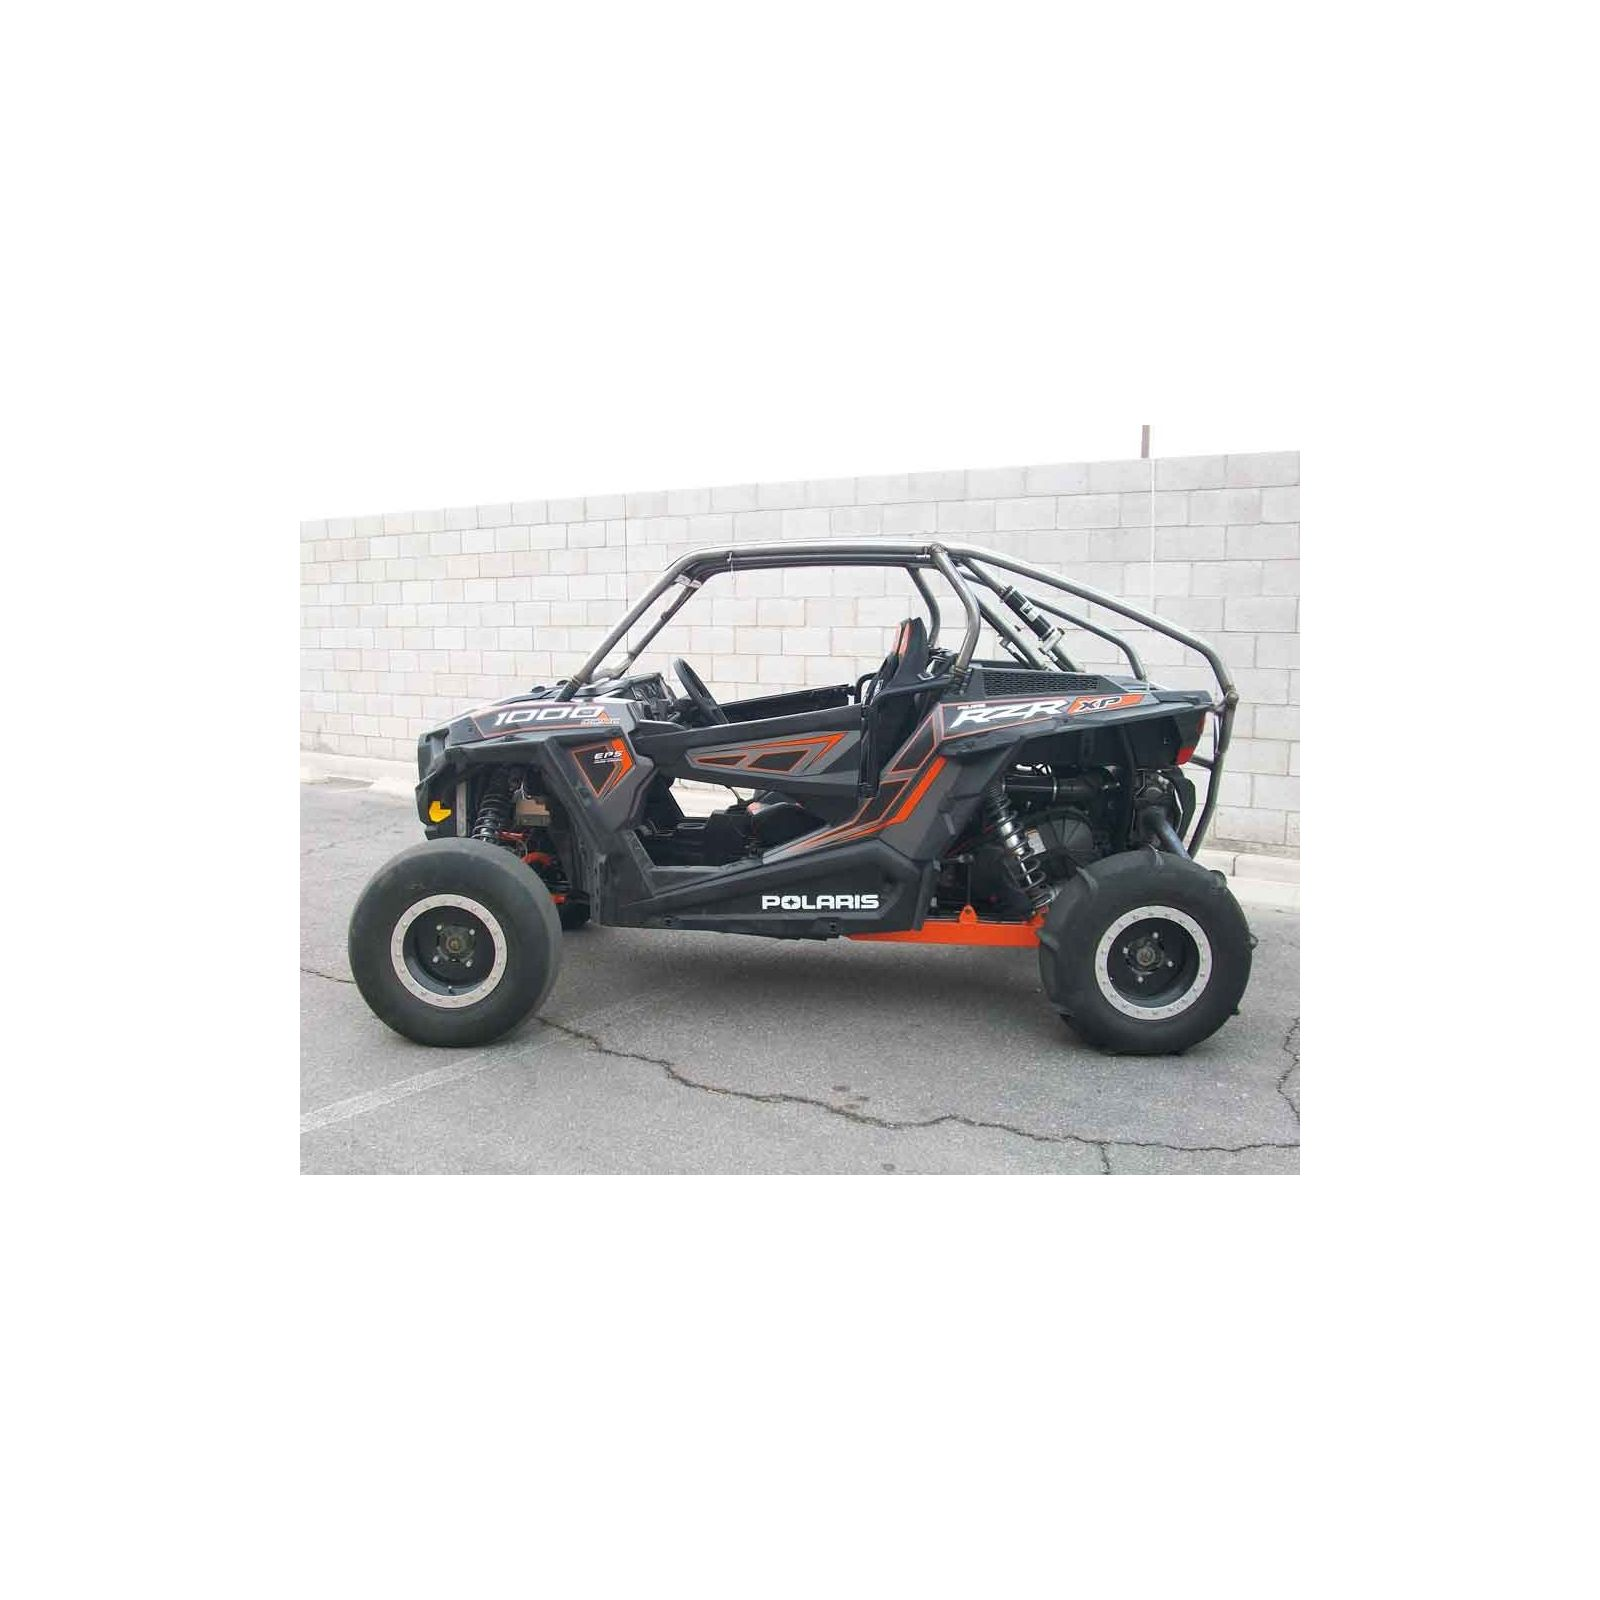 Polaris Rzr Xp1000 Turbo Roll Cage W Radius Bends